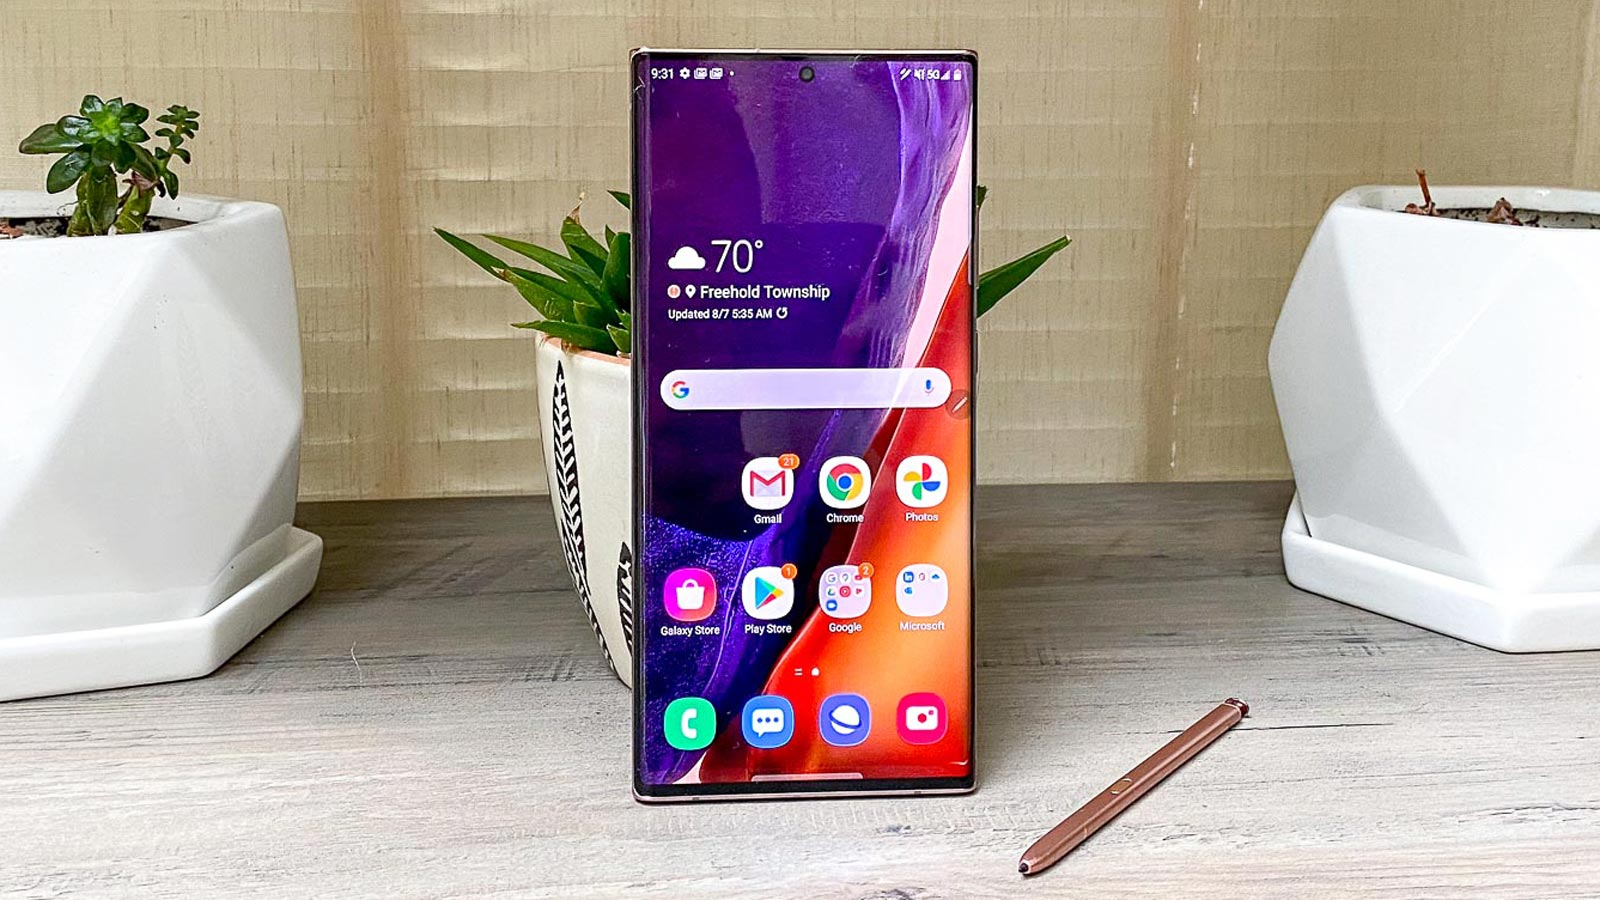 Galaxy Note 20 Ultra , Galaxy Note 20 Ultra Cam ,Galaxy Note 20 Ultra Camera test,Galaxy Note 20 Ultra Screen Repair, Galaxy Note 20 Ultra Camera, Galaxy Note 20 Ultra Unboxing, Galaxy Note 20 Ultra Hands-on